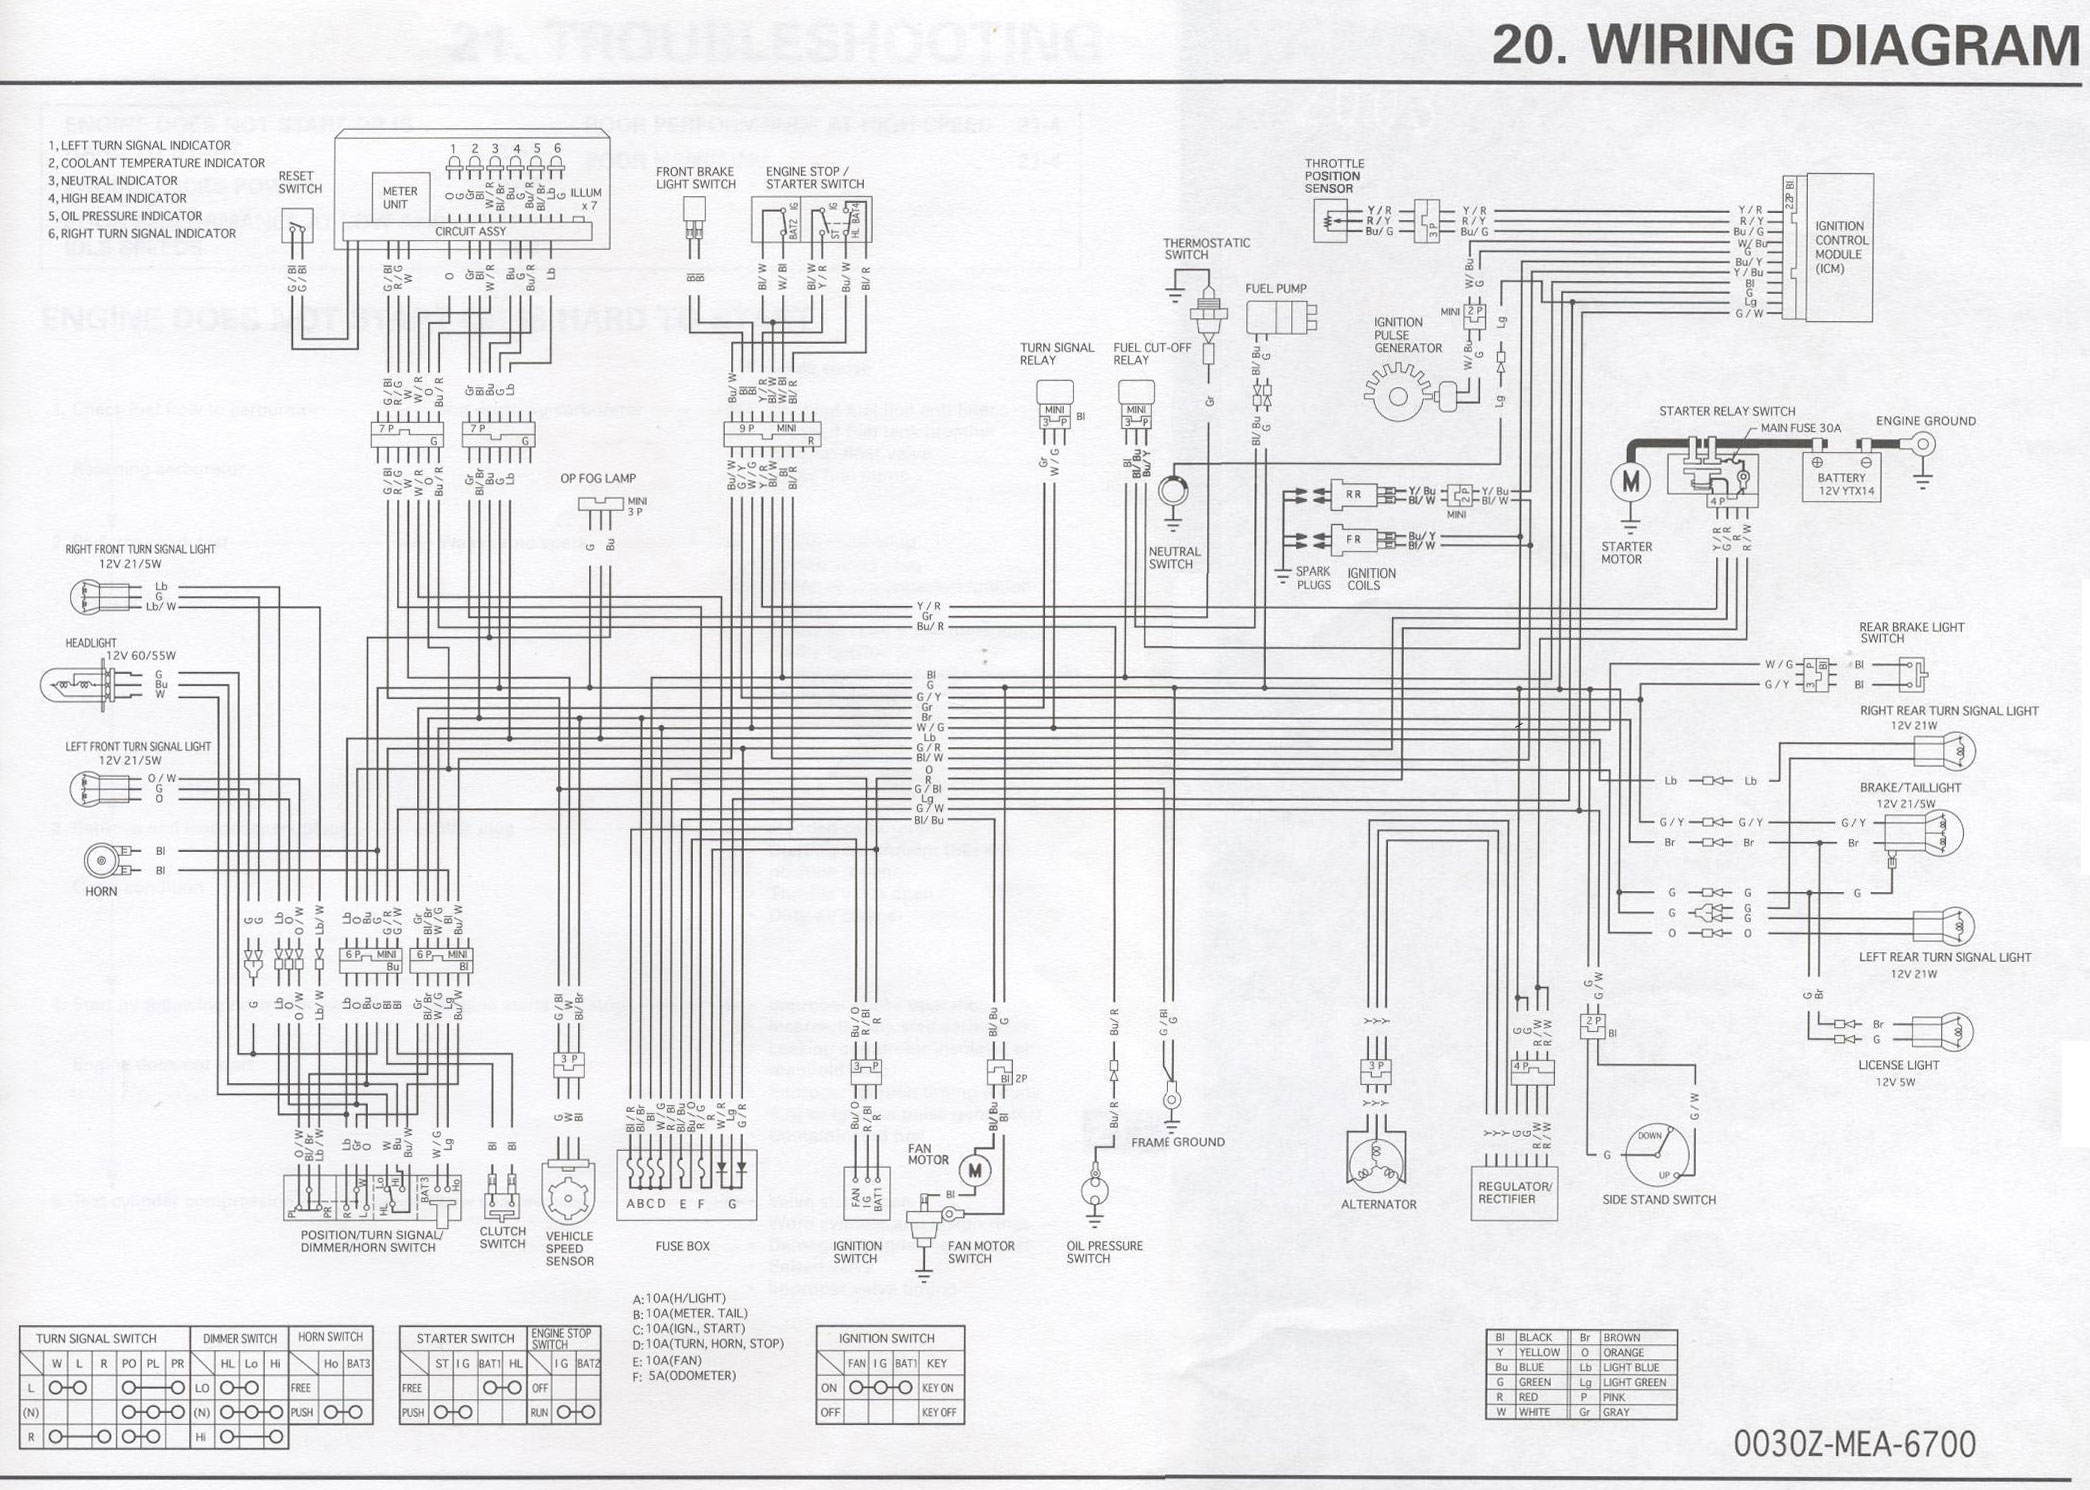 honda vtx 1300 engine diagram honda wiring diagrams